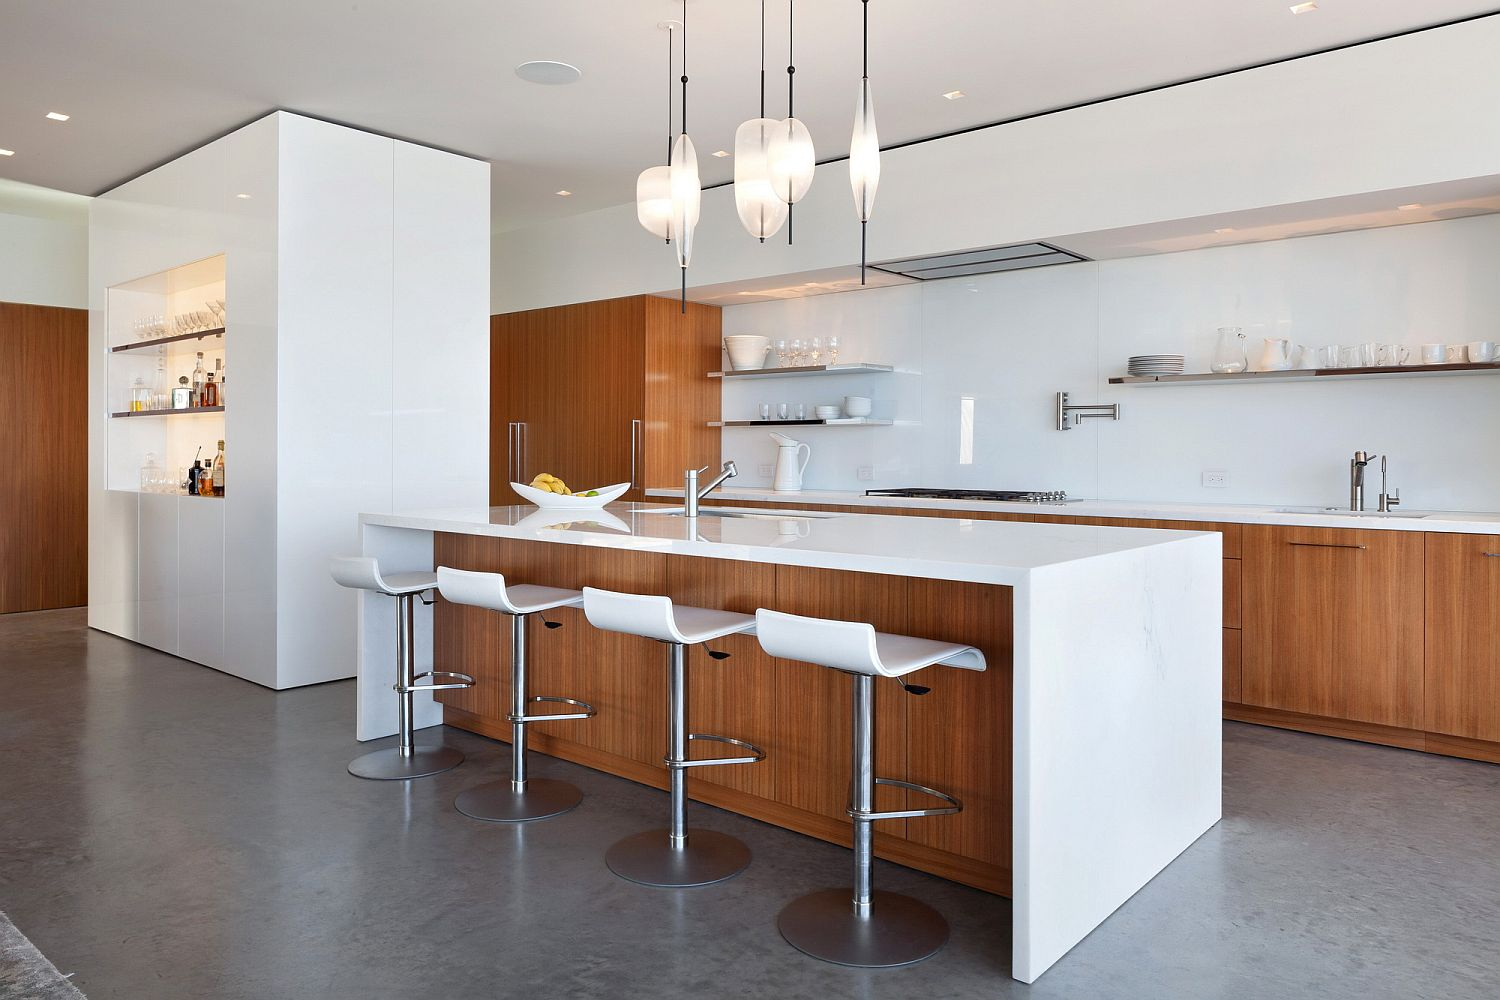 Modern kitchen in wood and white with slim bar stools and floating glass shelves